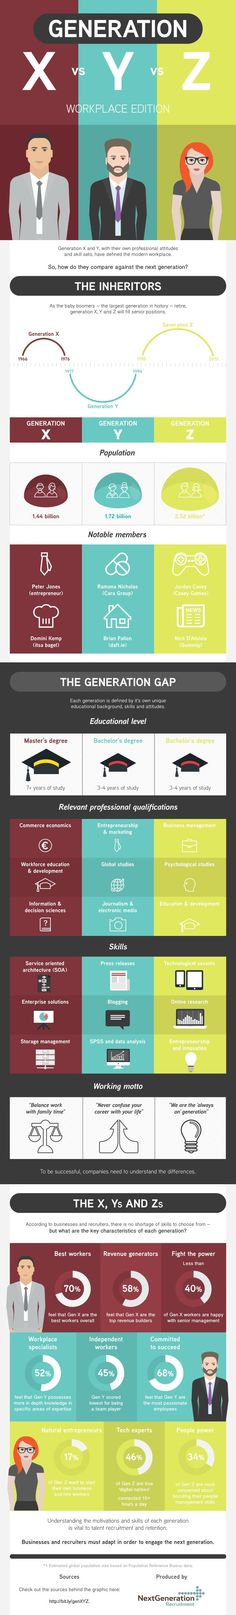 Generation X vs Y vs Z: Workplace Edition #infographic ~ Visualistan